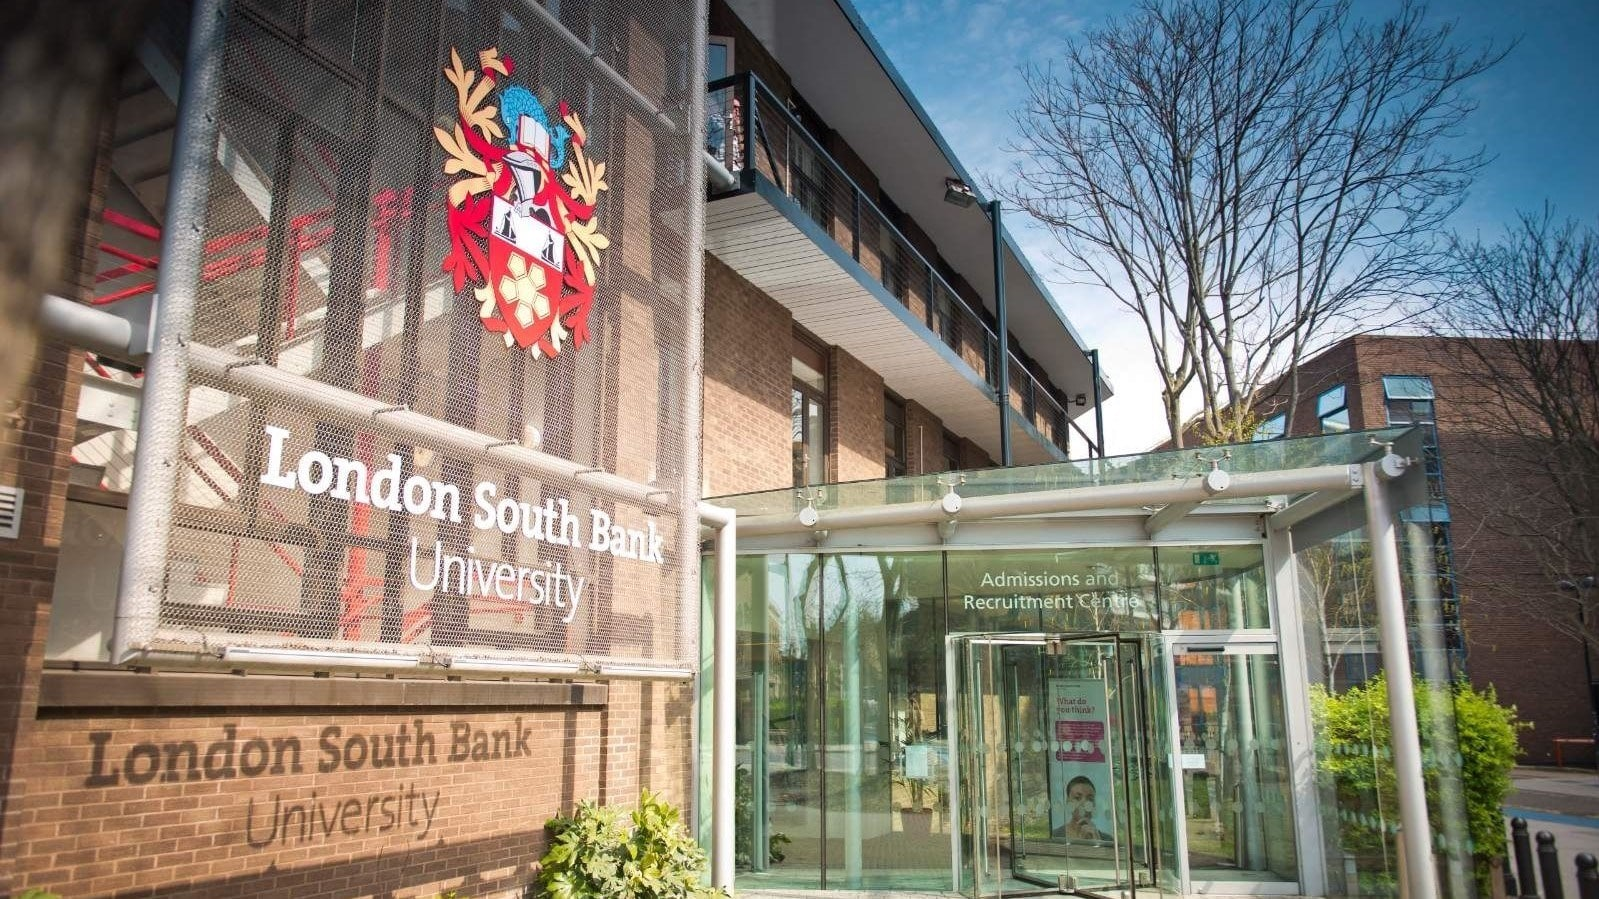 Ketahui Informasi Penting Tentang London South Bank University